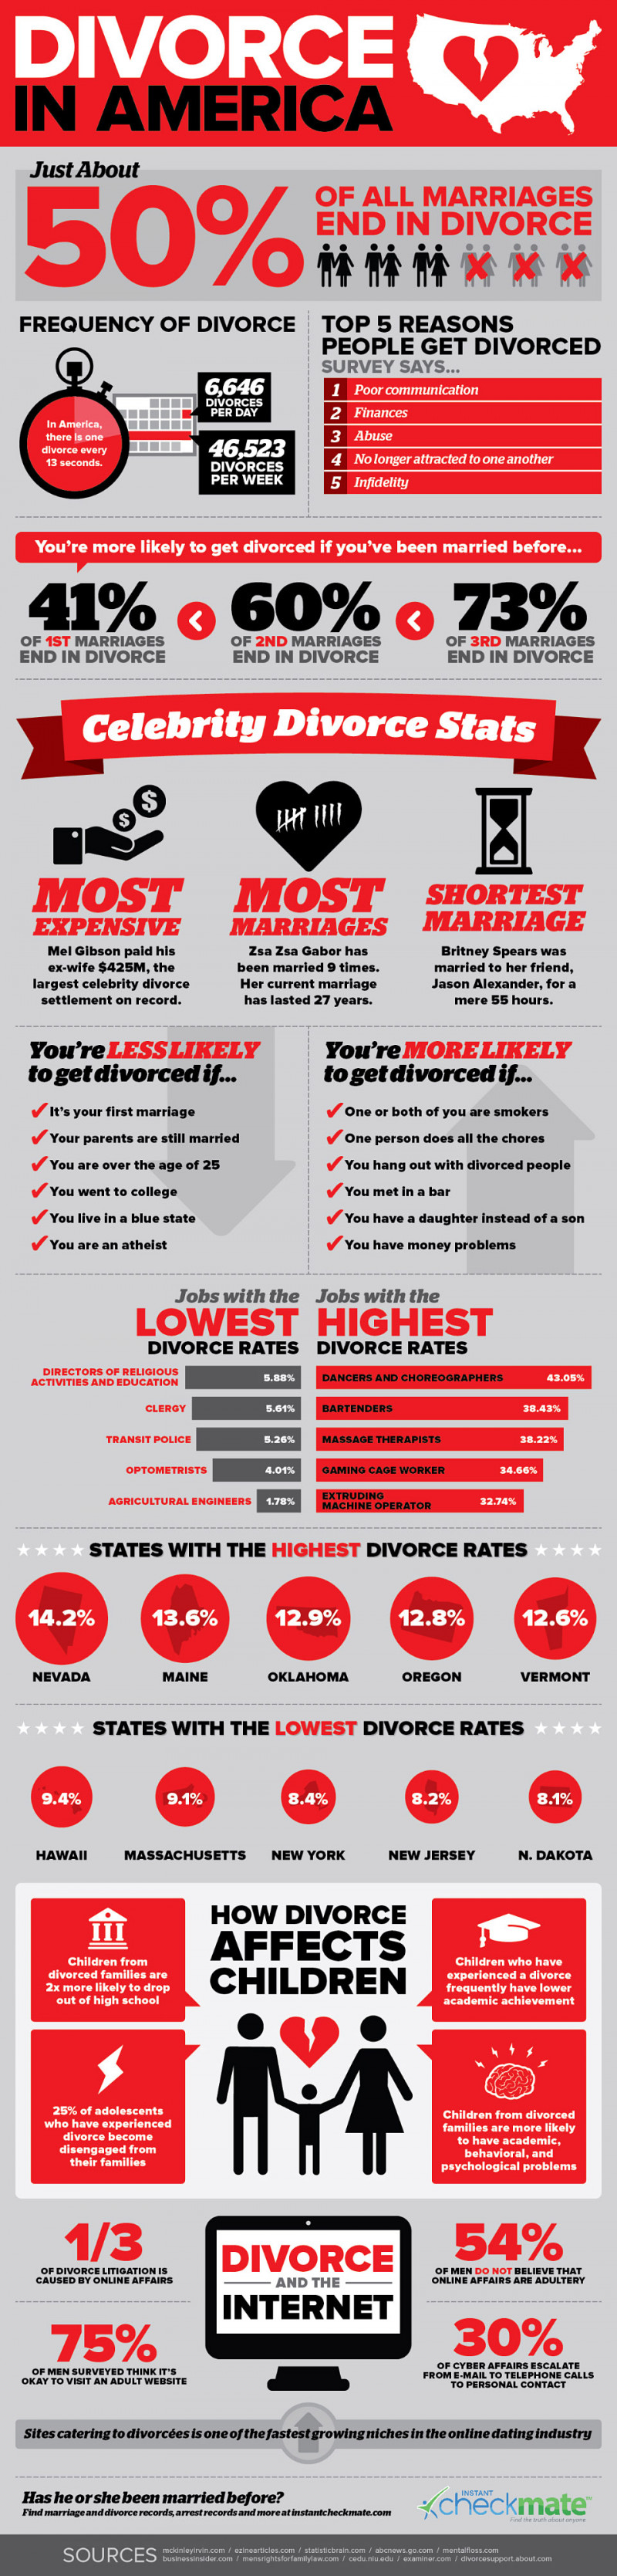 Divorce in America Infographic from Visual.ly